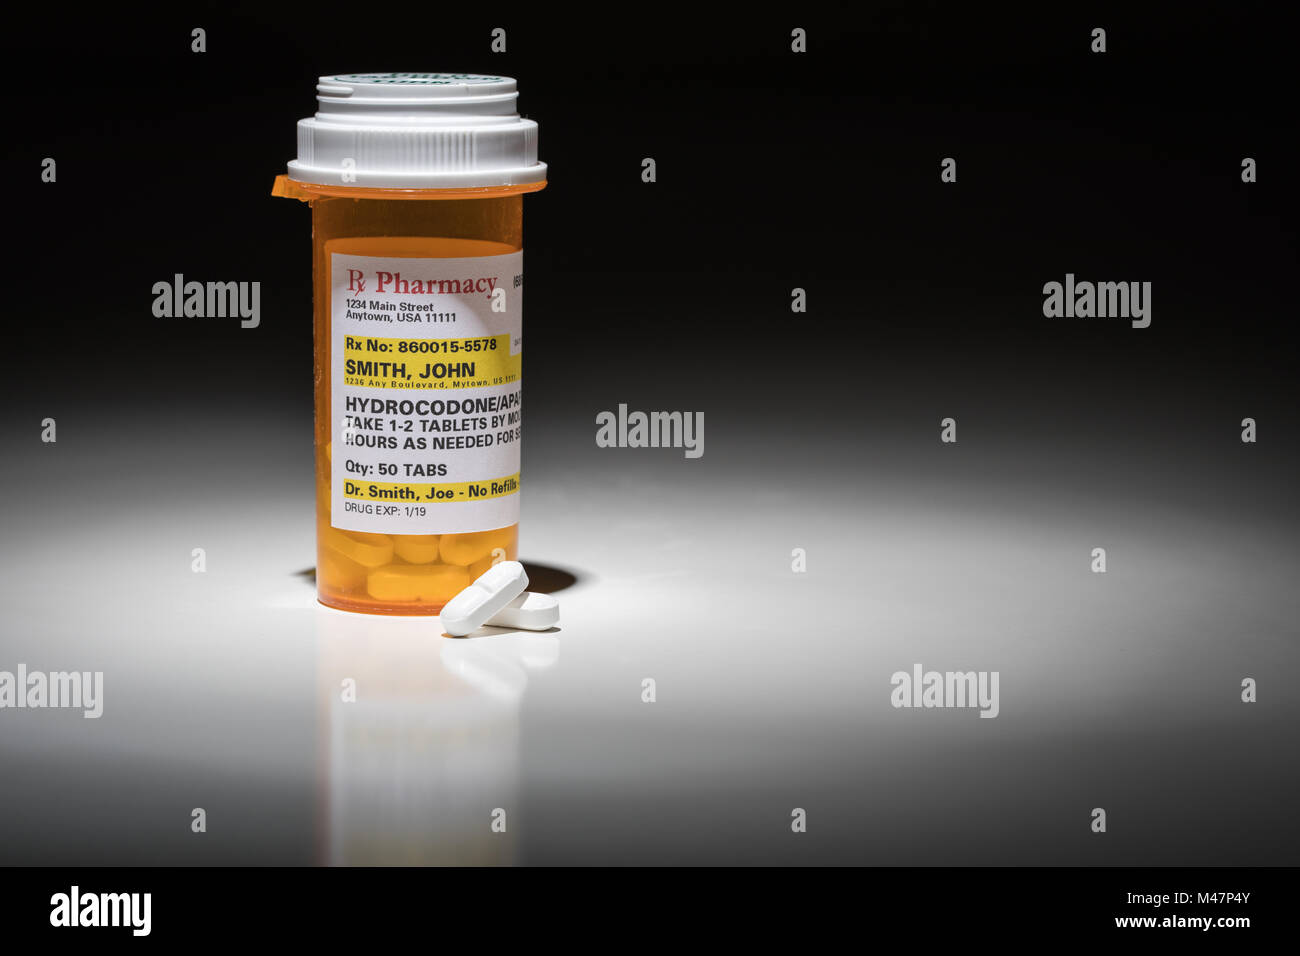 Hydrocodone Pills and Prescription Bottle with Non Proprietary Label. No model release required - contains ficticious - Stock Image